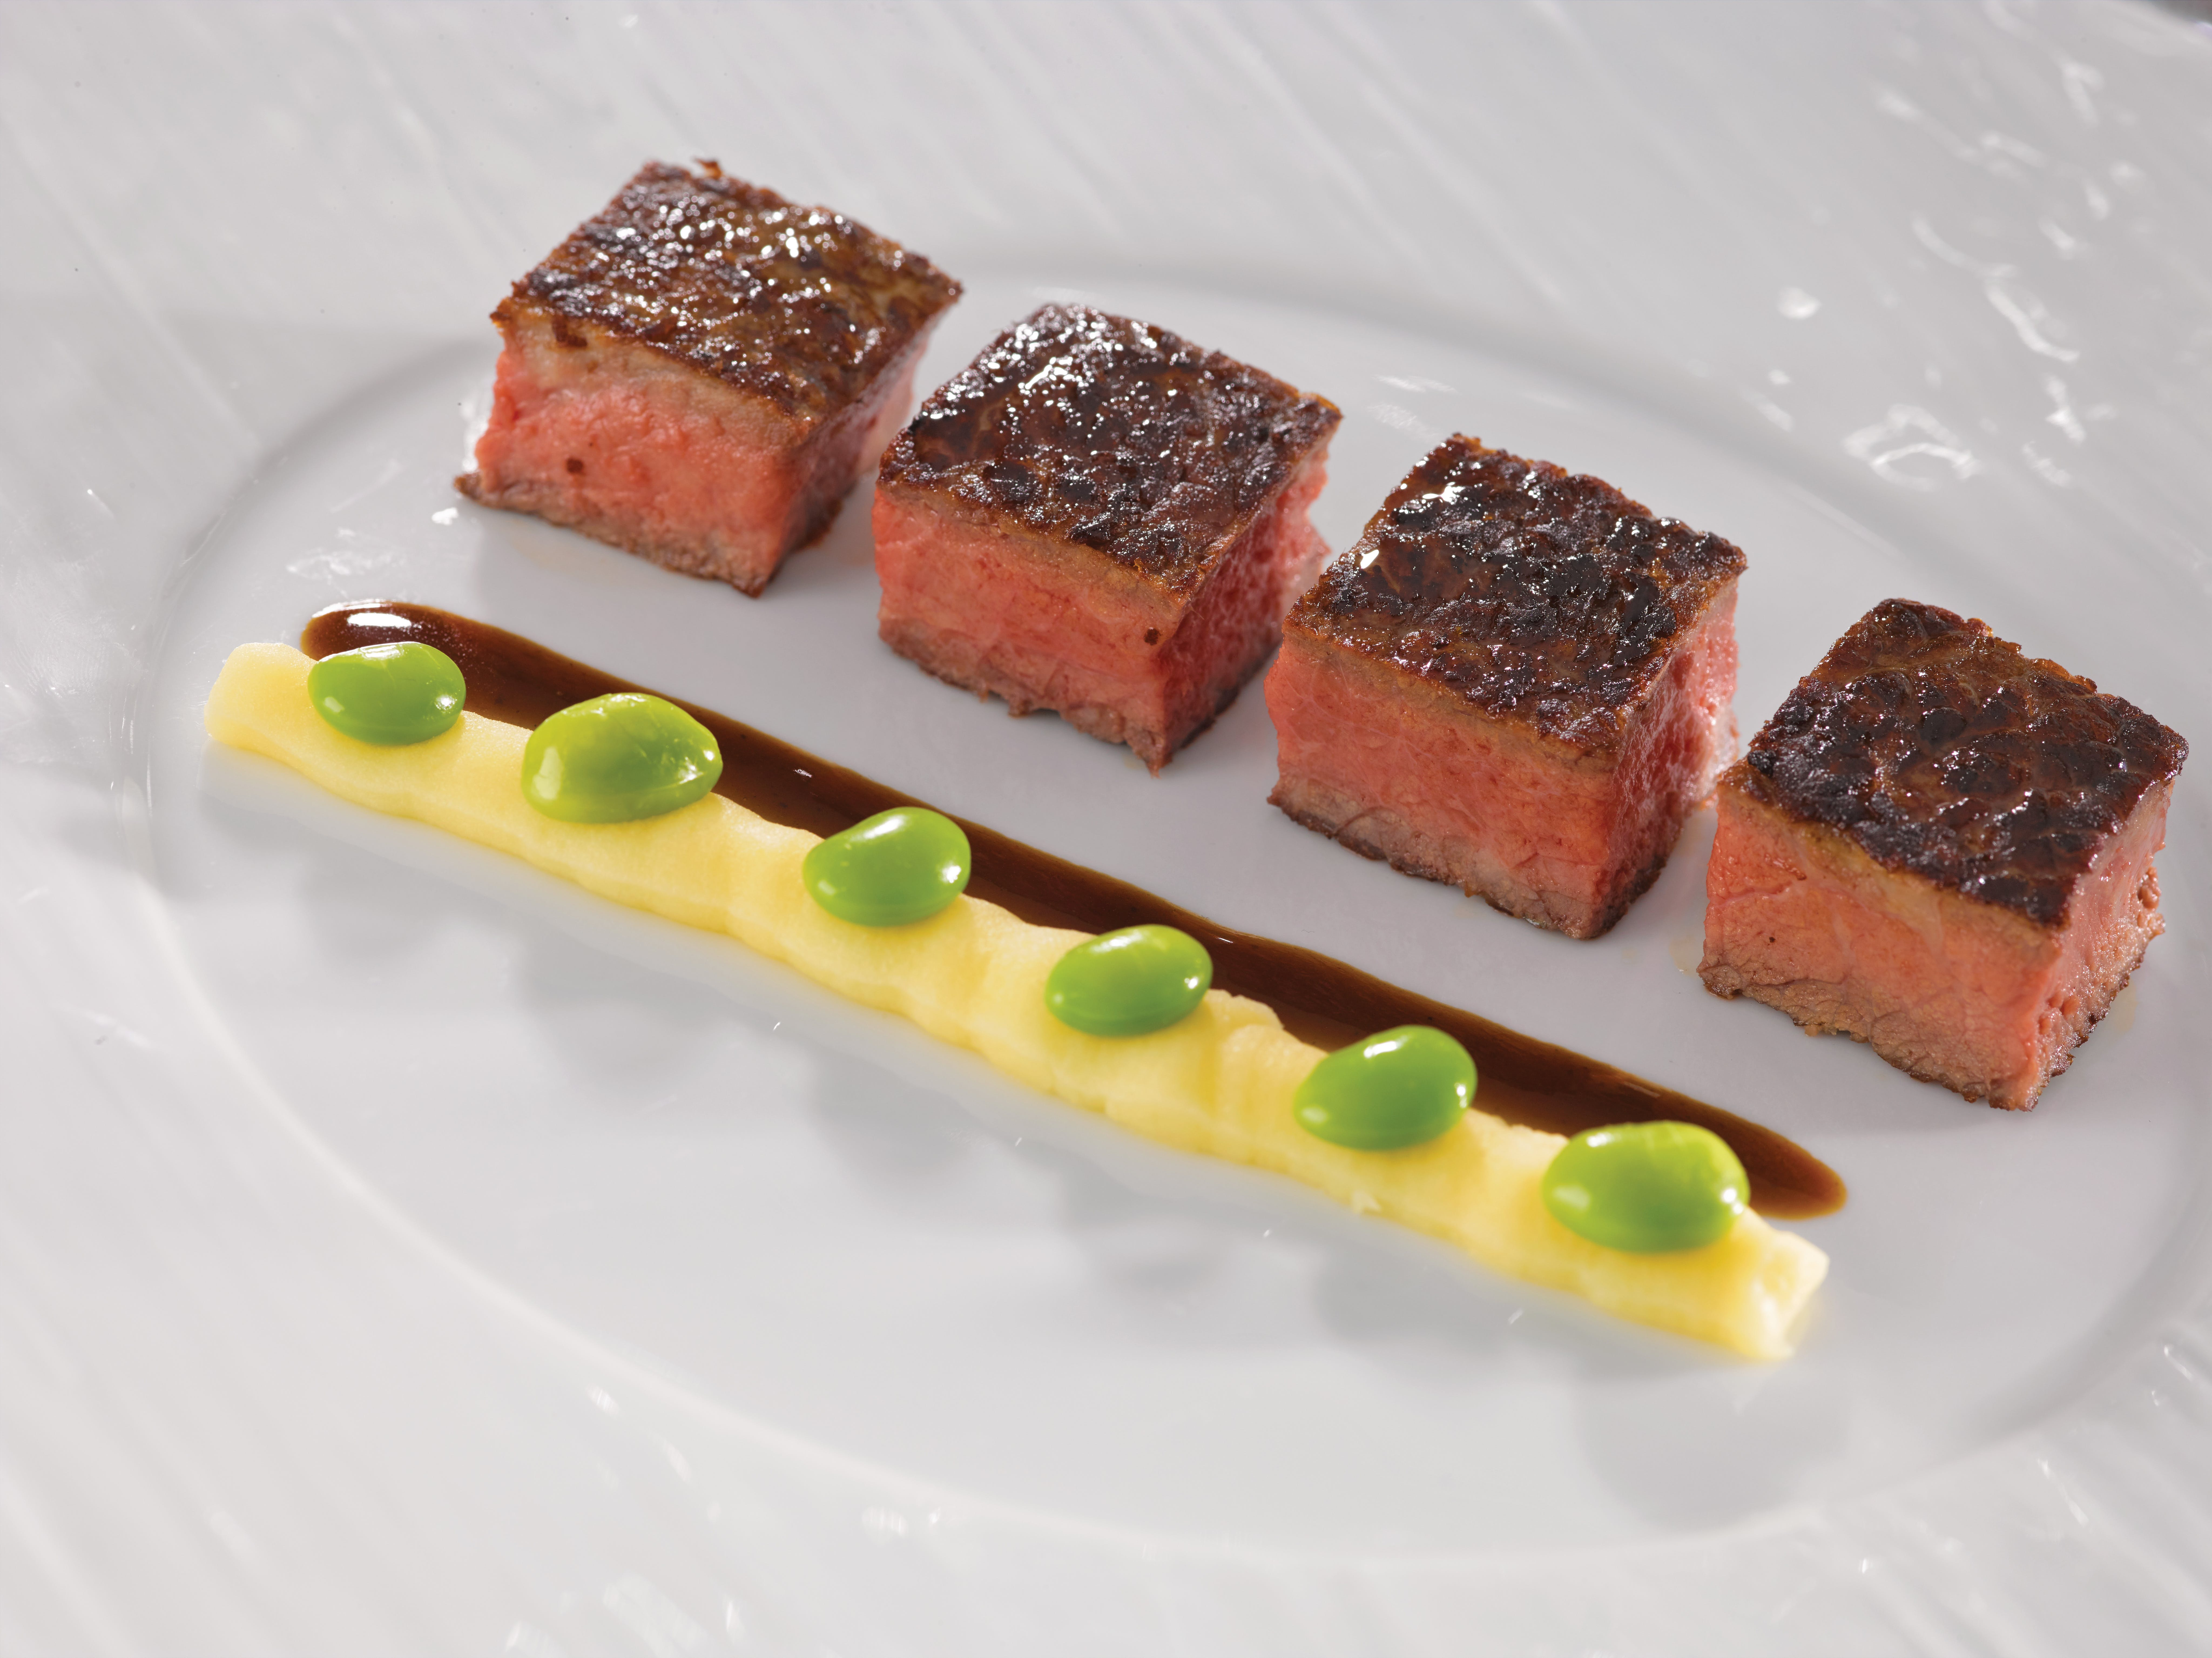 Seared Kobe Beef sous vide with Valrhona sauce at La Reserve on Oceania.